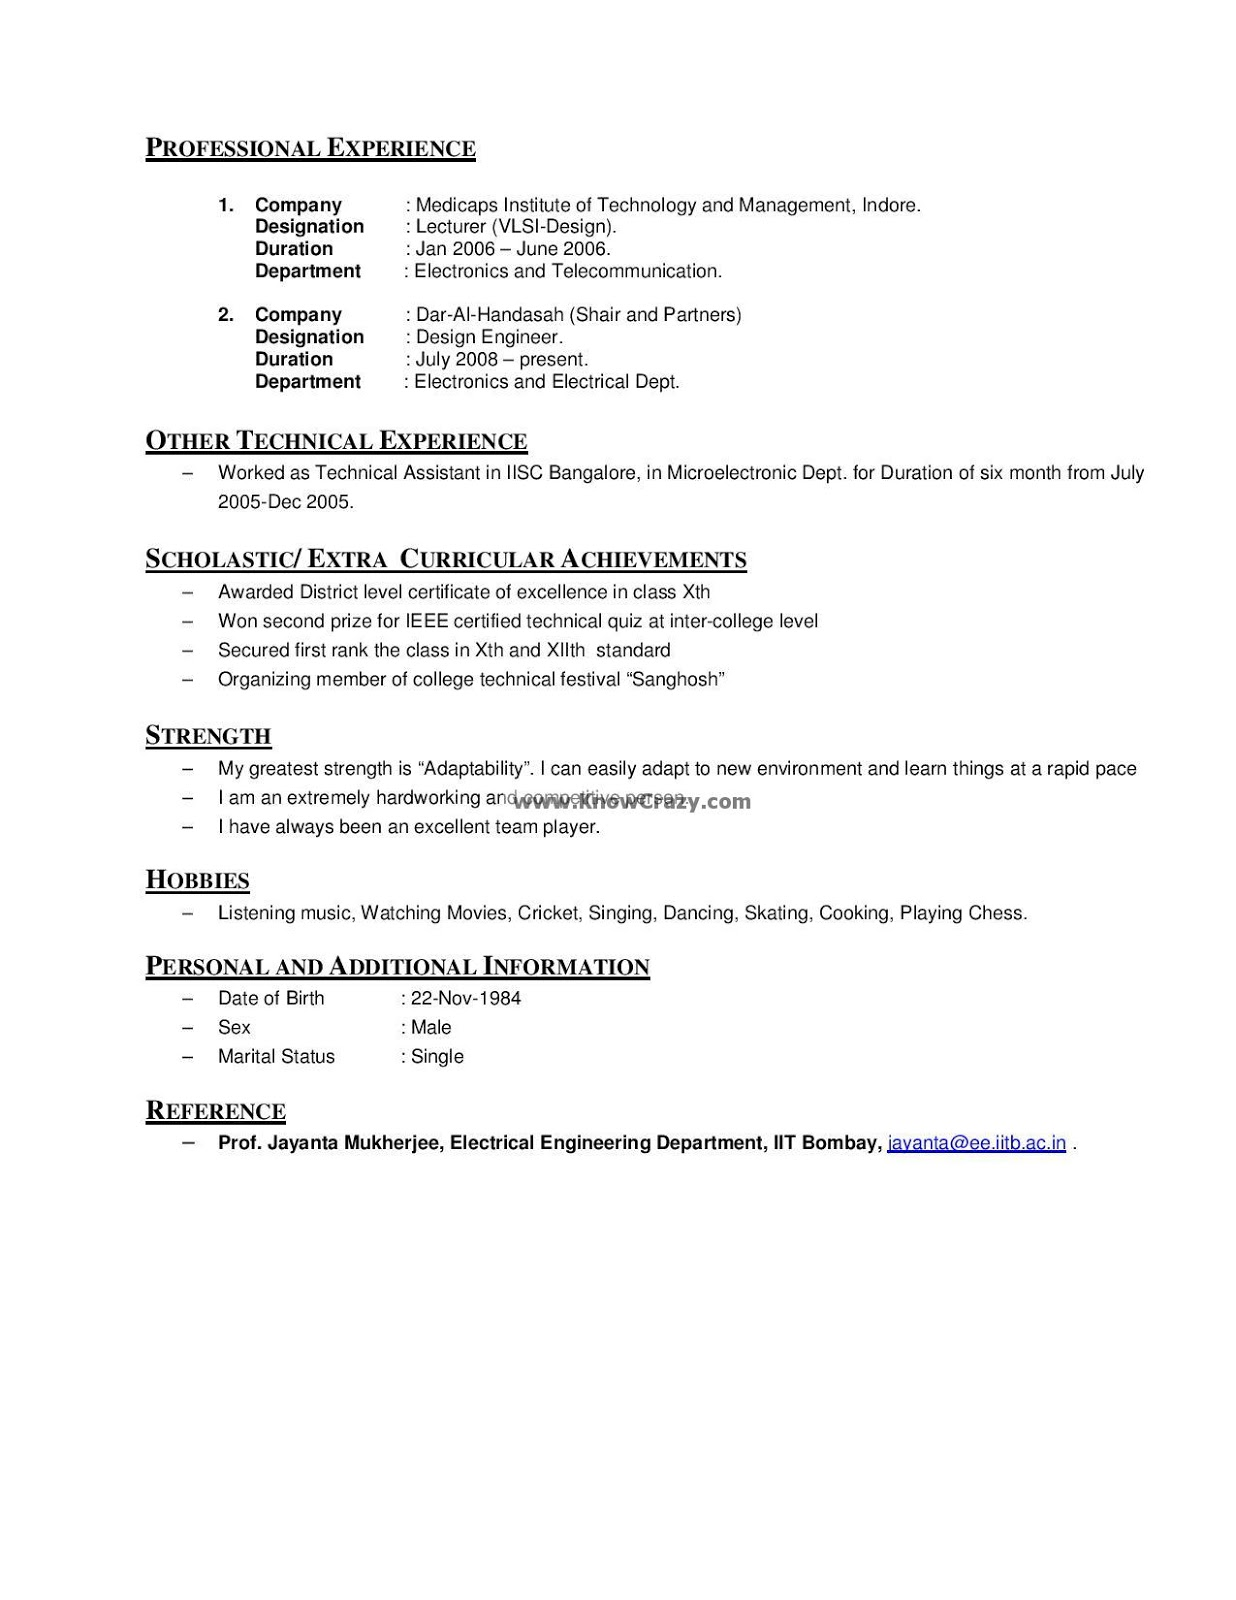 hobbies in resume